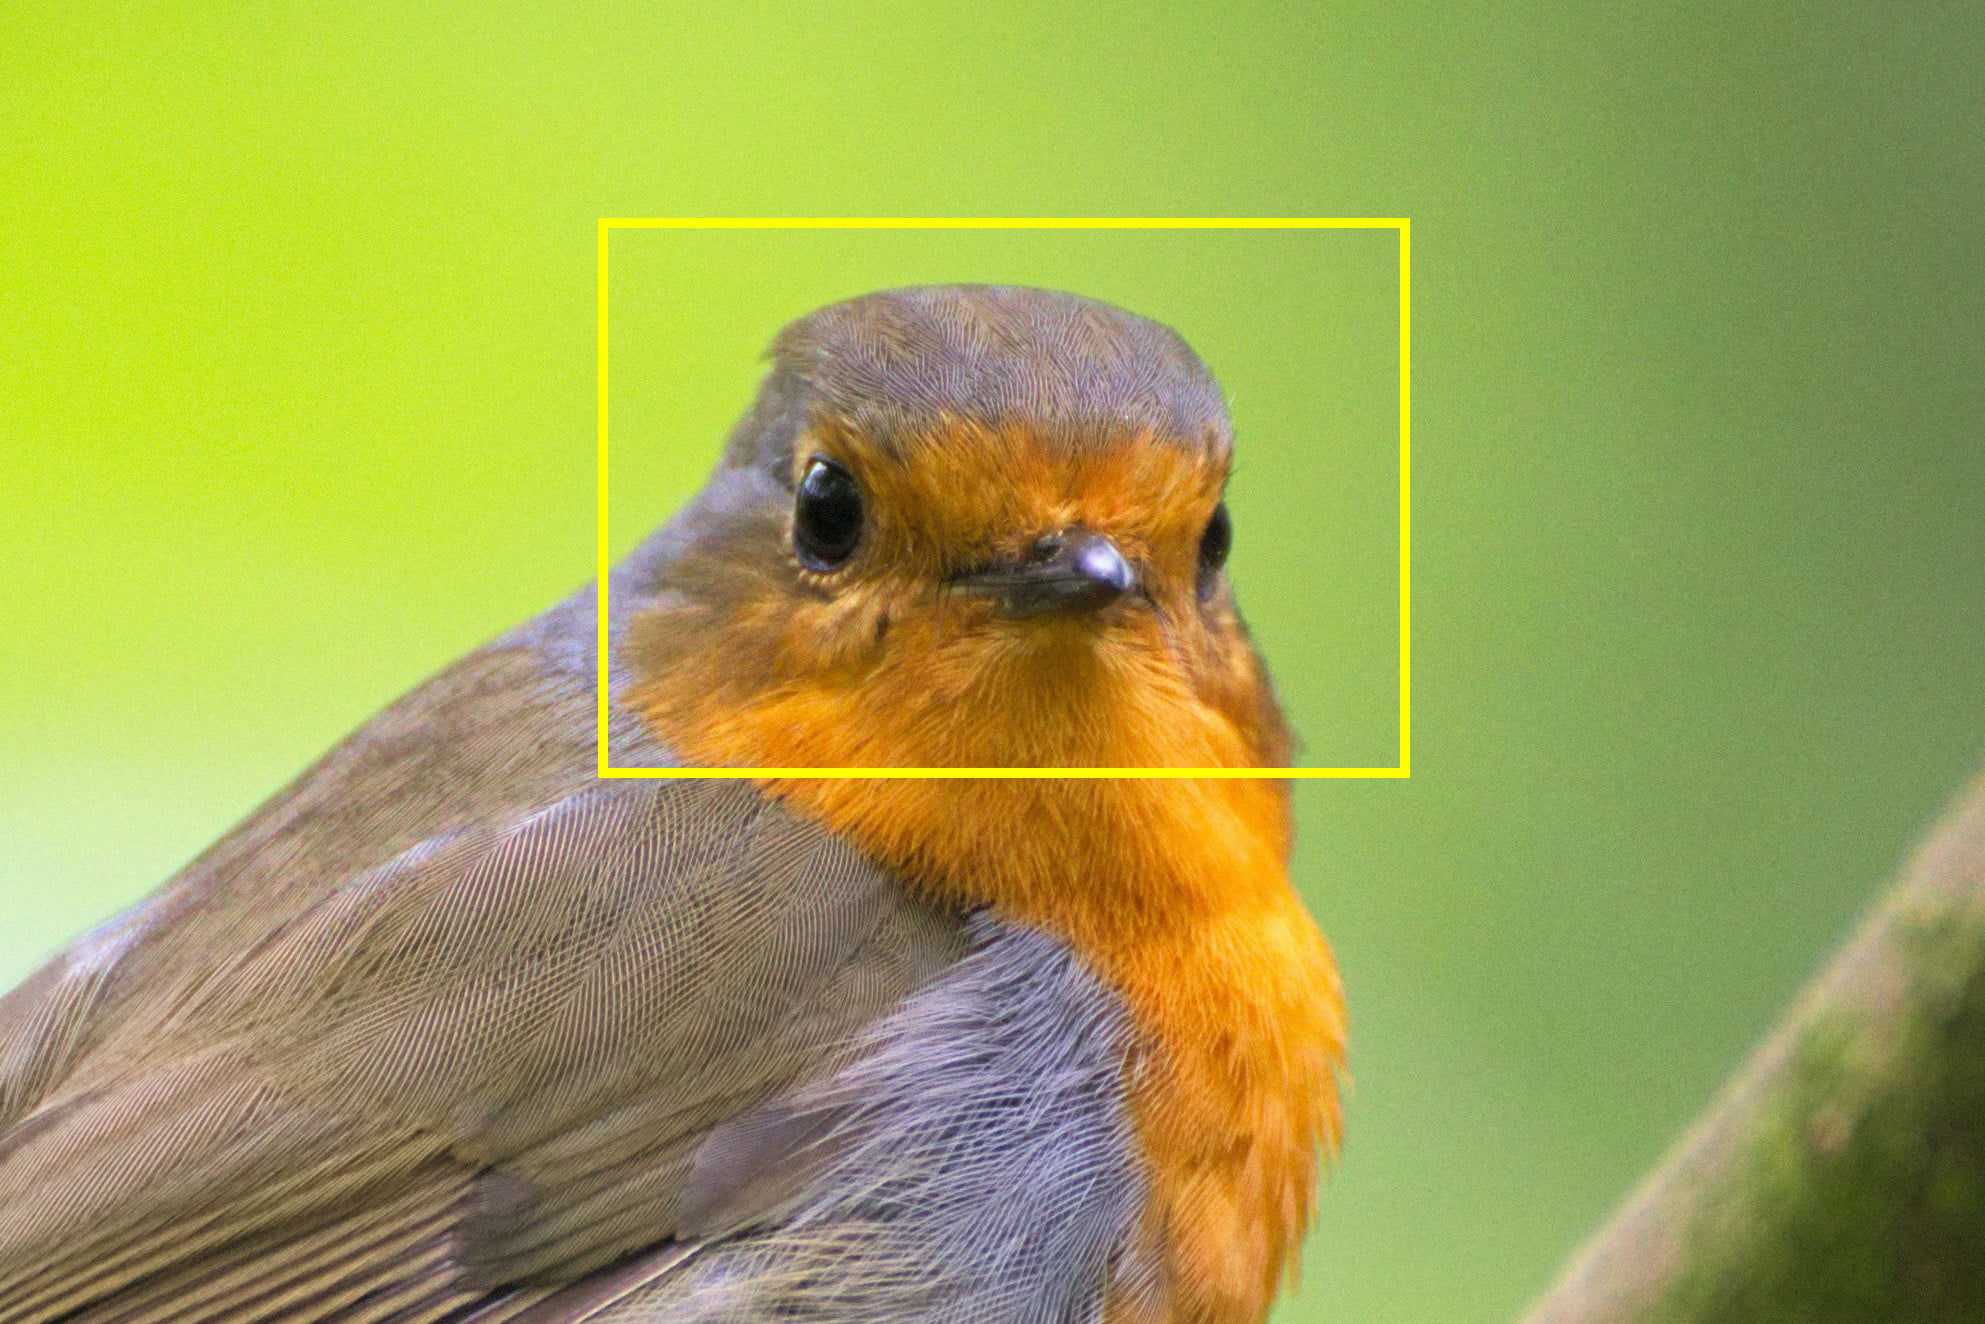 Artificial intelligence can now identify a bird just by looking at a photo